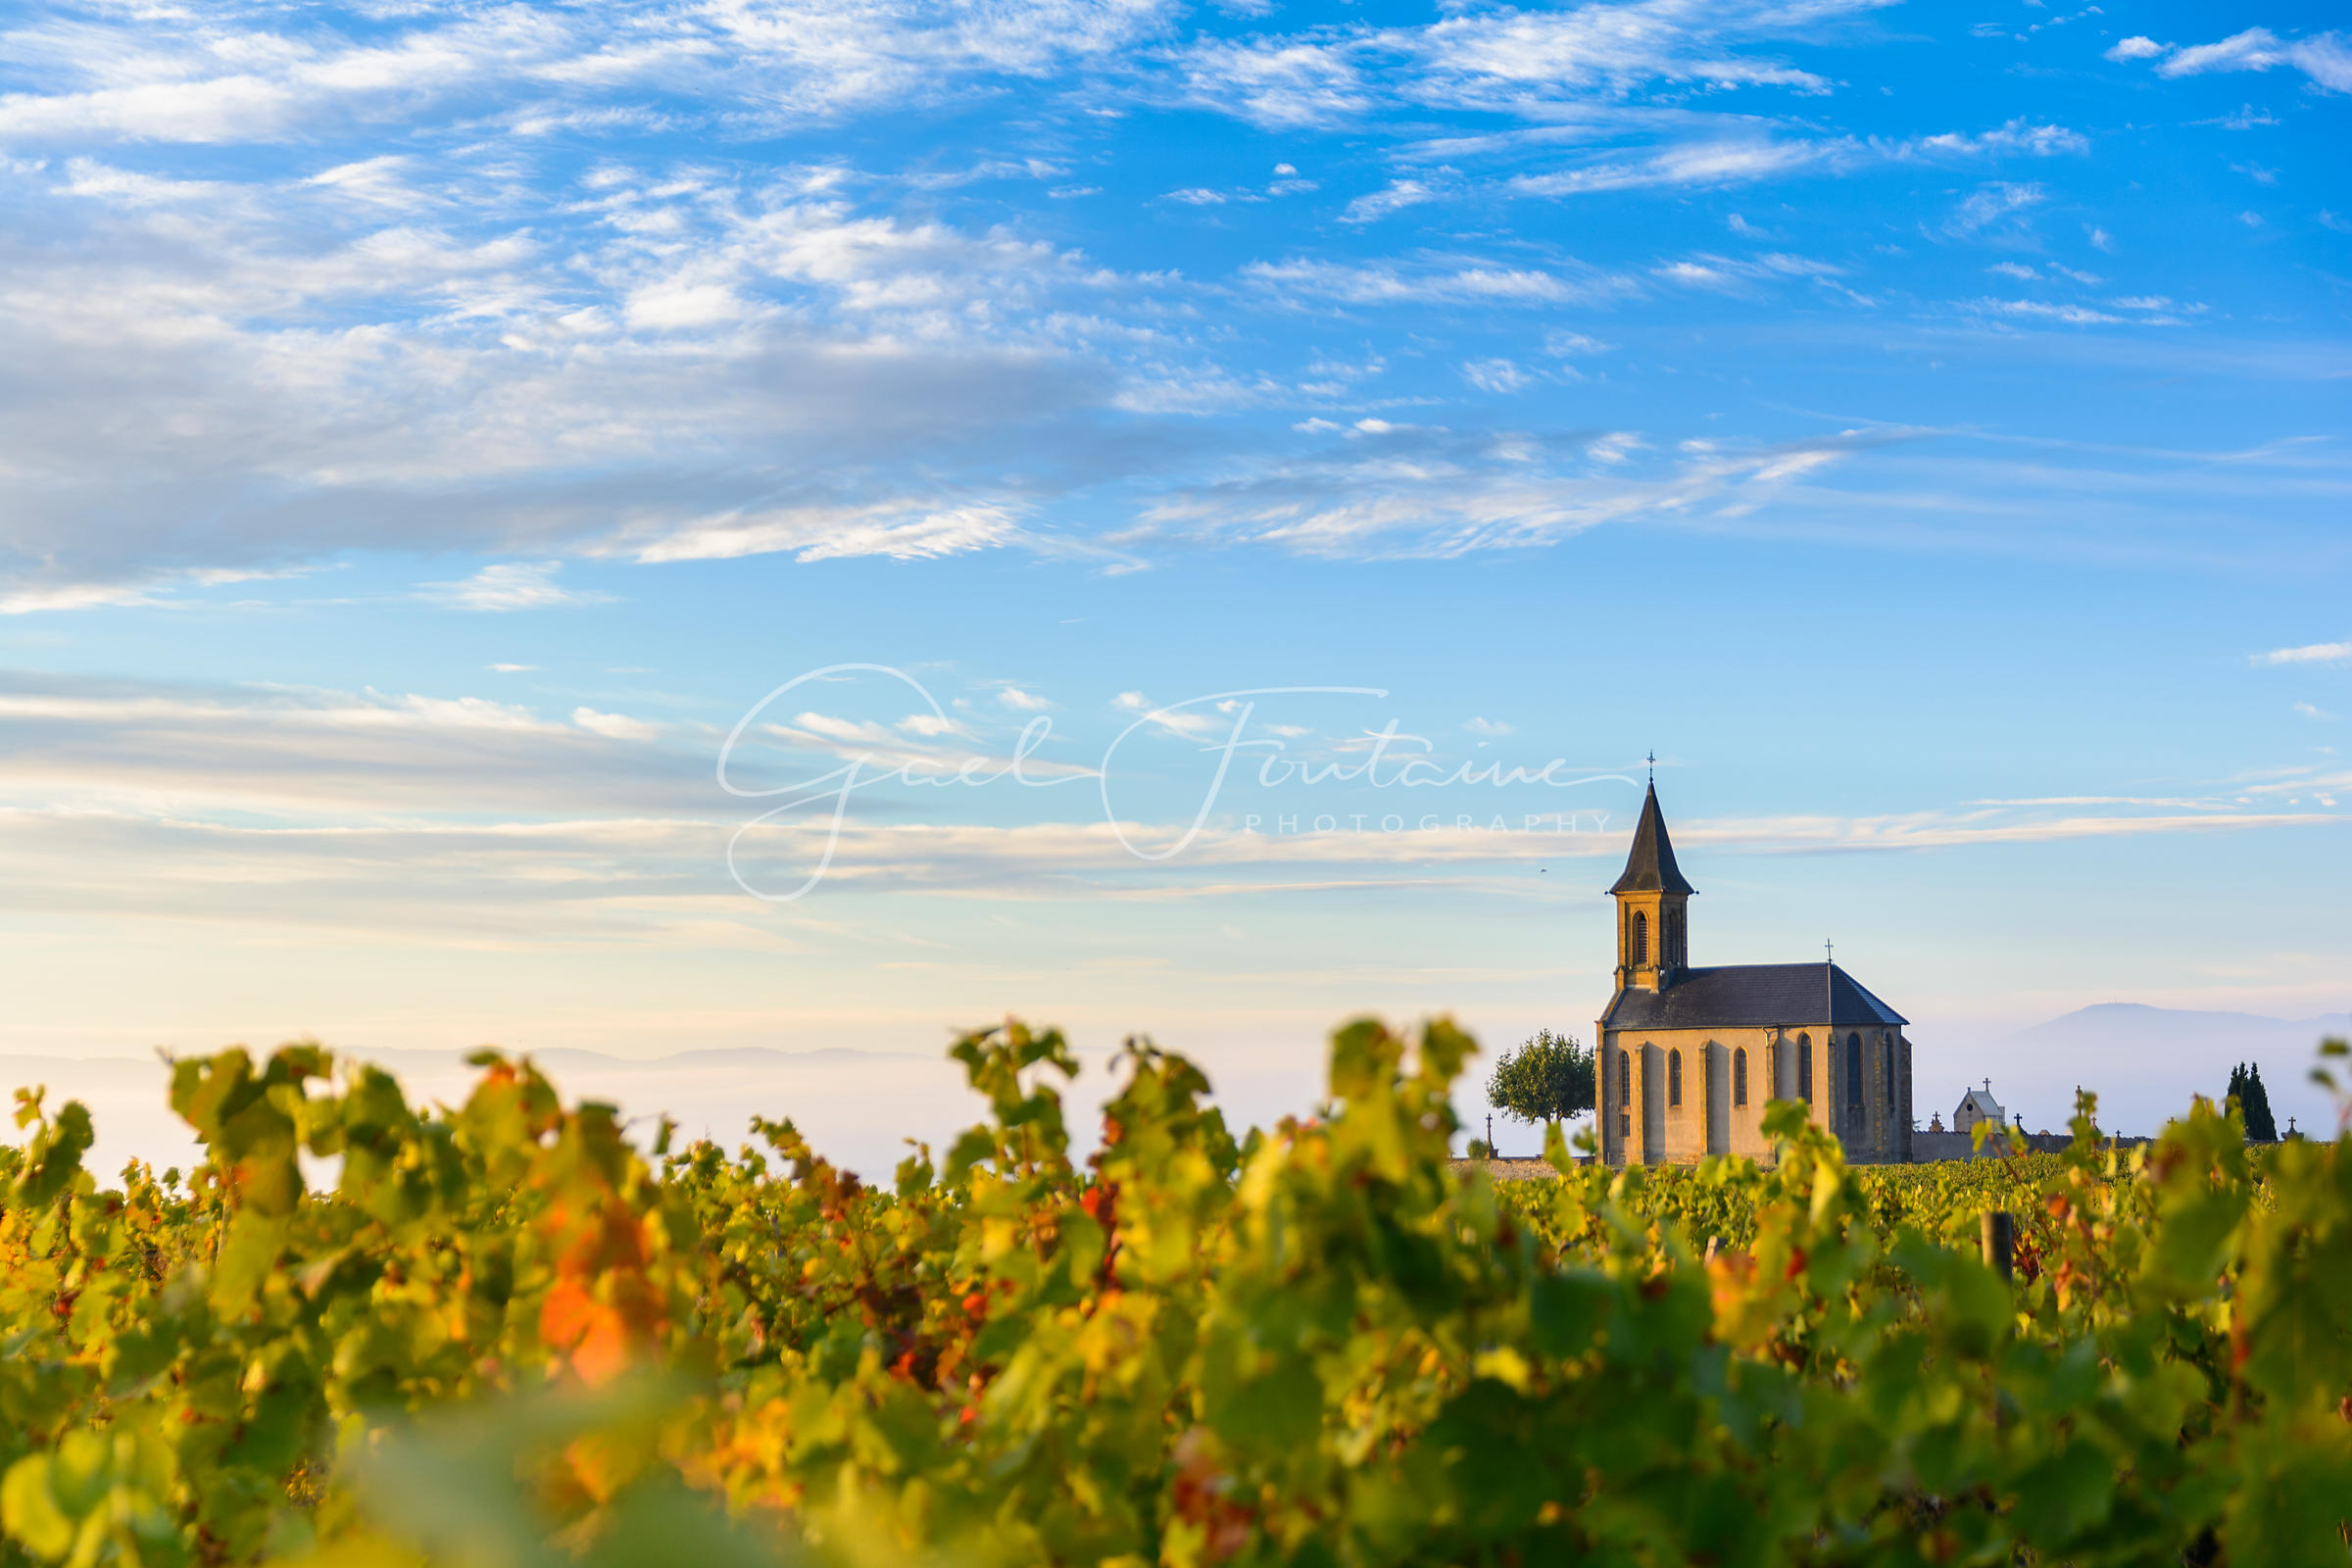 Vineyards_and_church_in_Beaujolais_with_a_large_blue_sky_at_sunrise_-_6000_x_4000